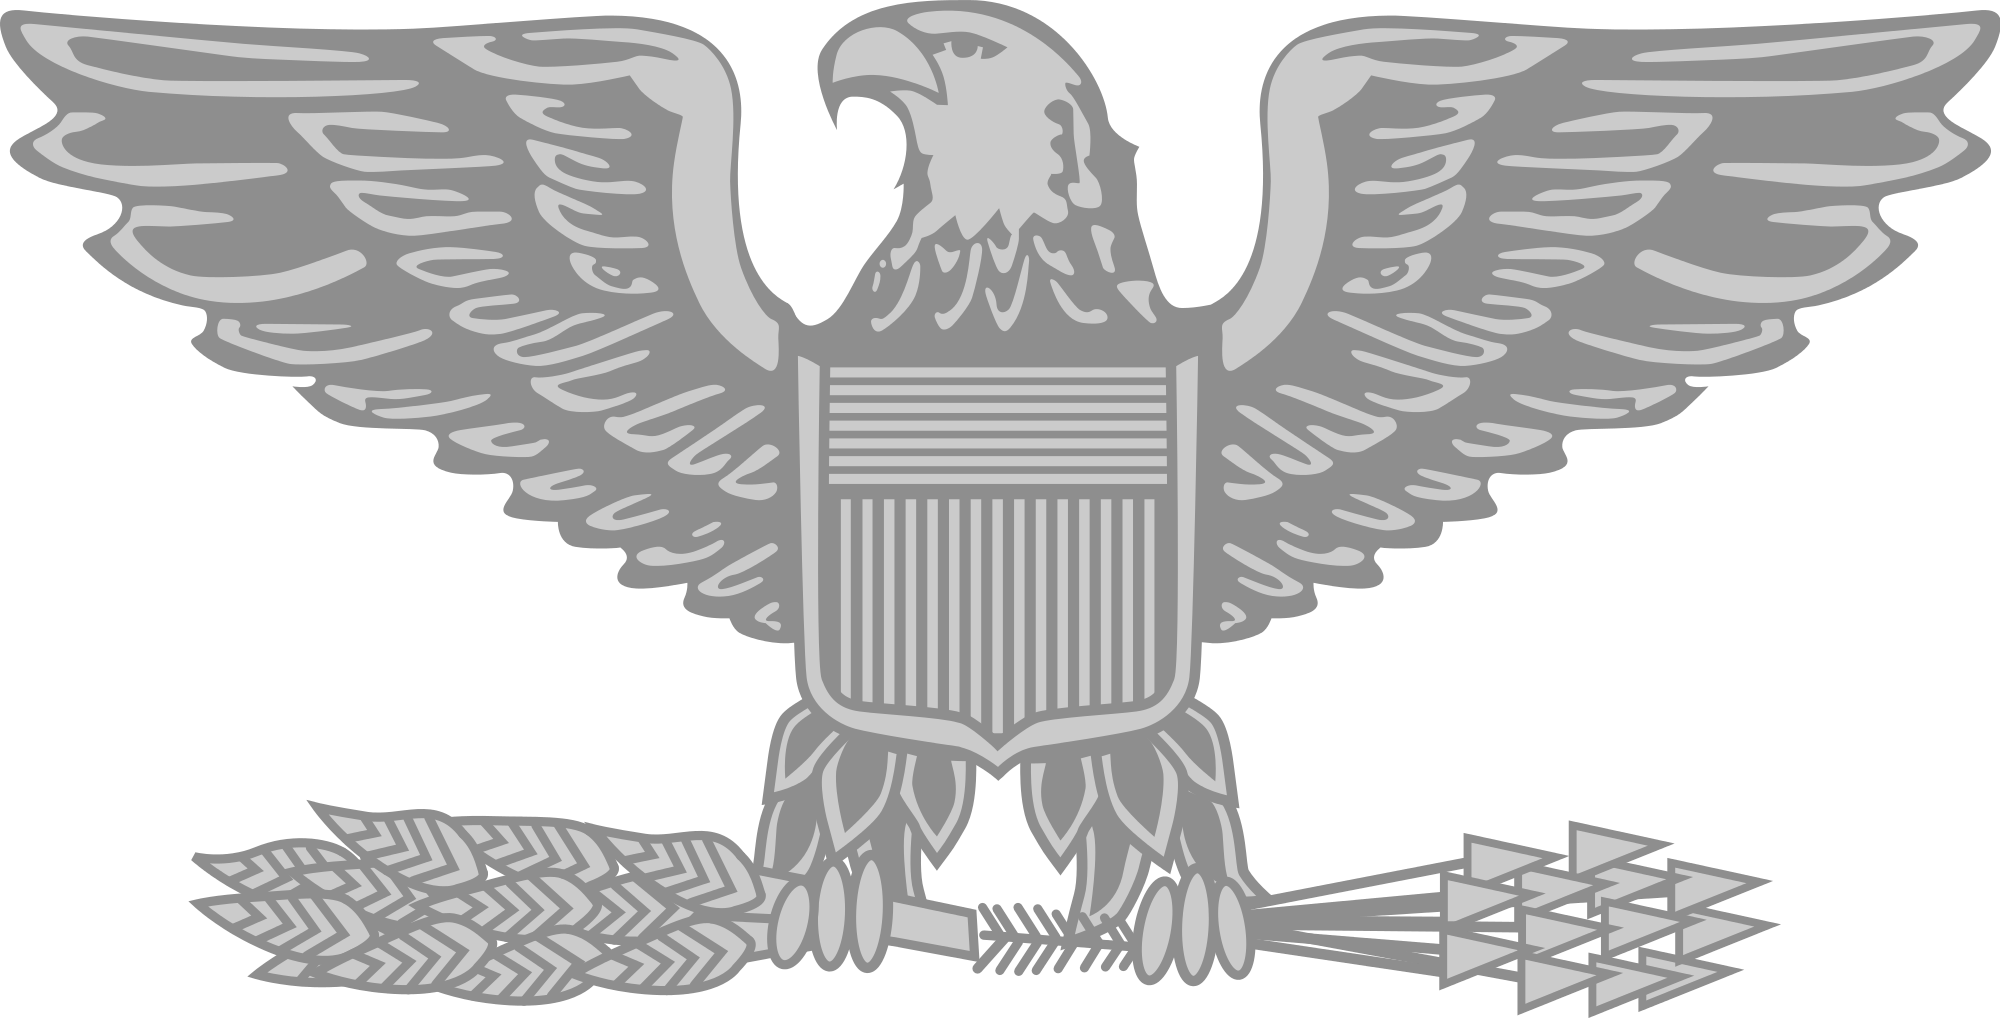 Filecolonel insigniag wikimedia commons filecolonel insigniag thecheapjerseys Choice Image